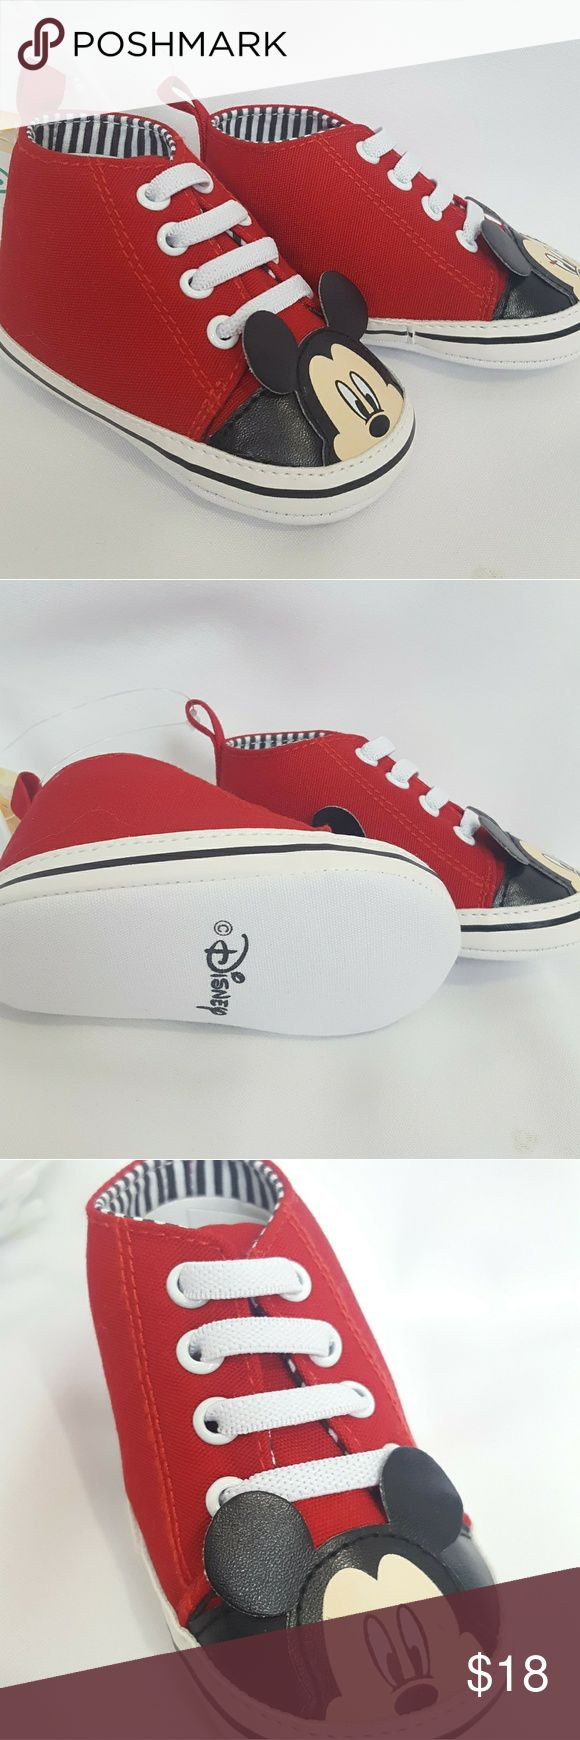 Mickey Mouse Disney baby chucks sneakers Sz 6-9M Mickey Mouse Disney baby chucks sneakers Sz 6-9M Disney Shoes Sneakers